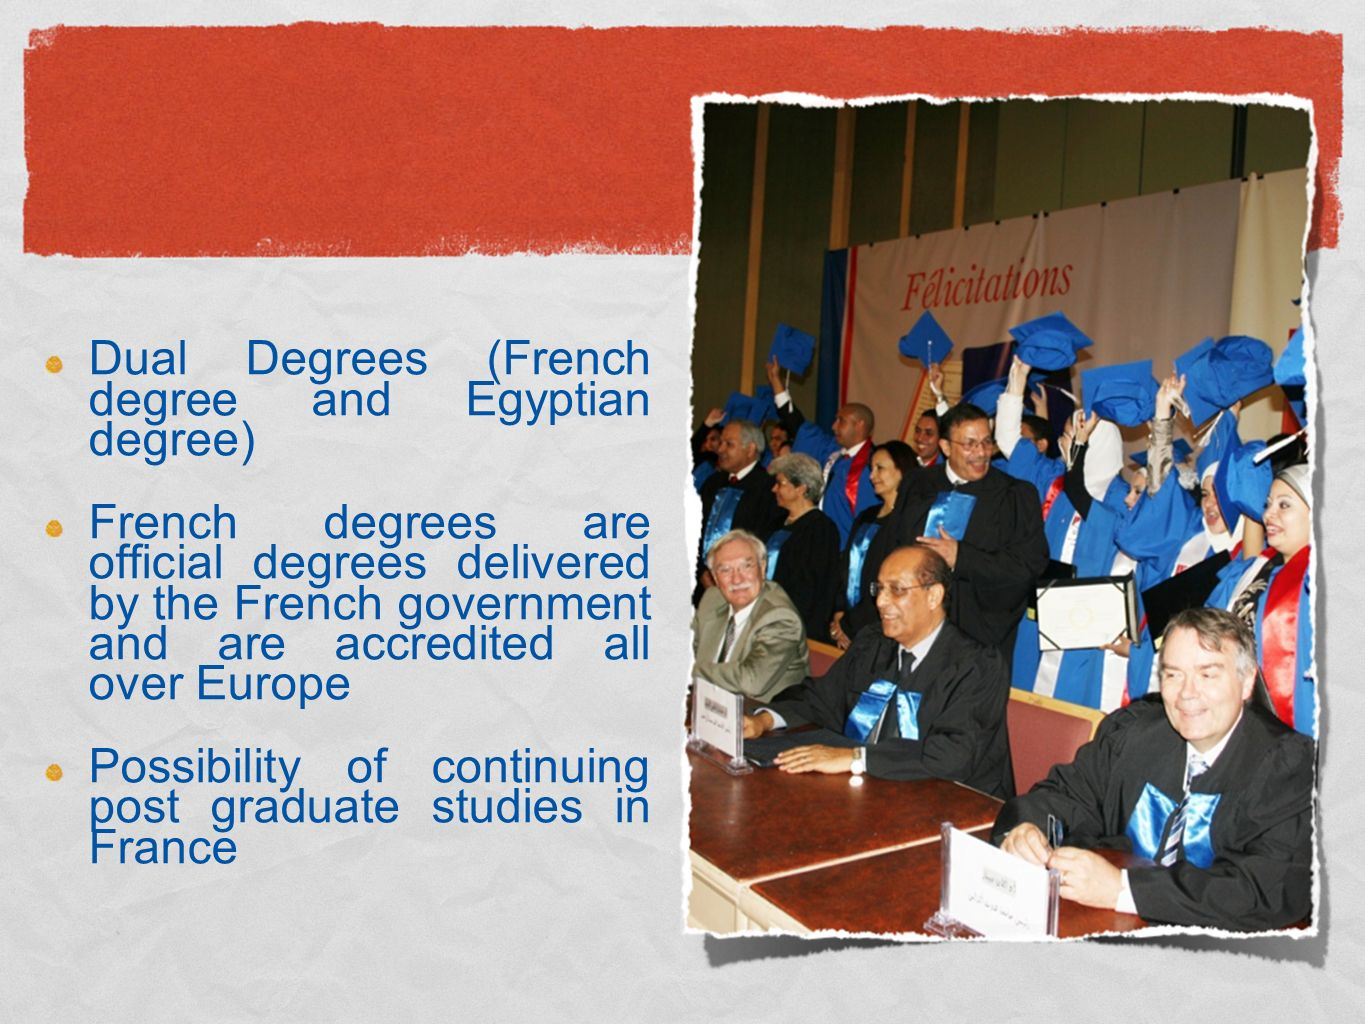 Students exchange programs and possibility of internships in France